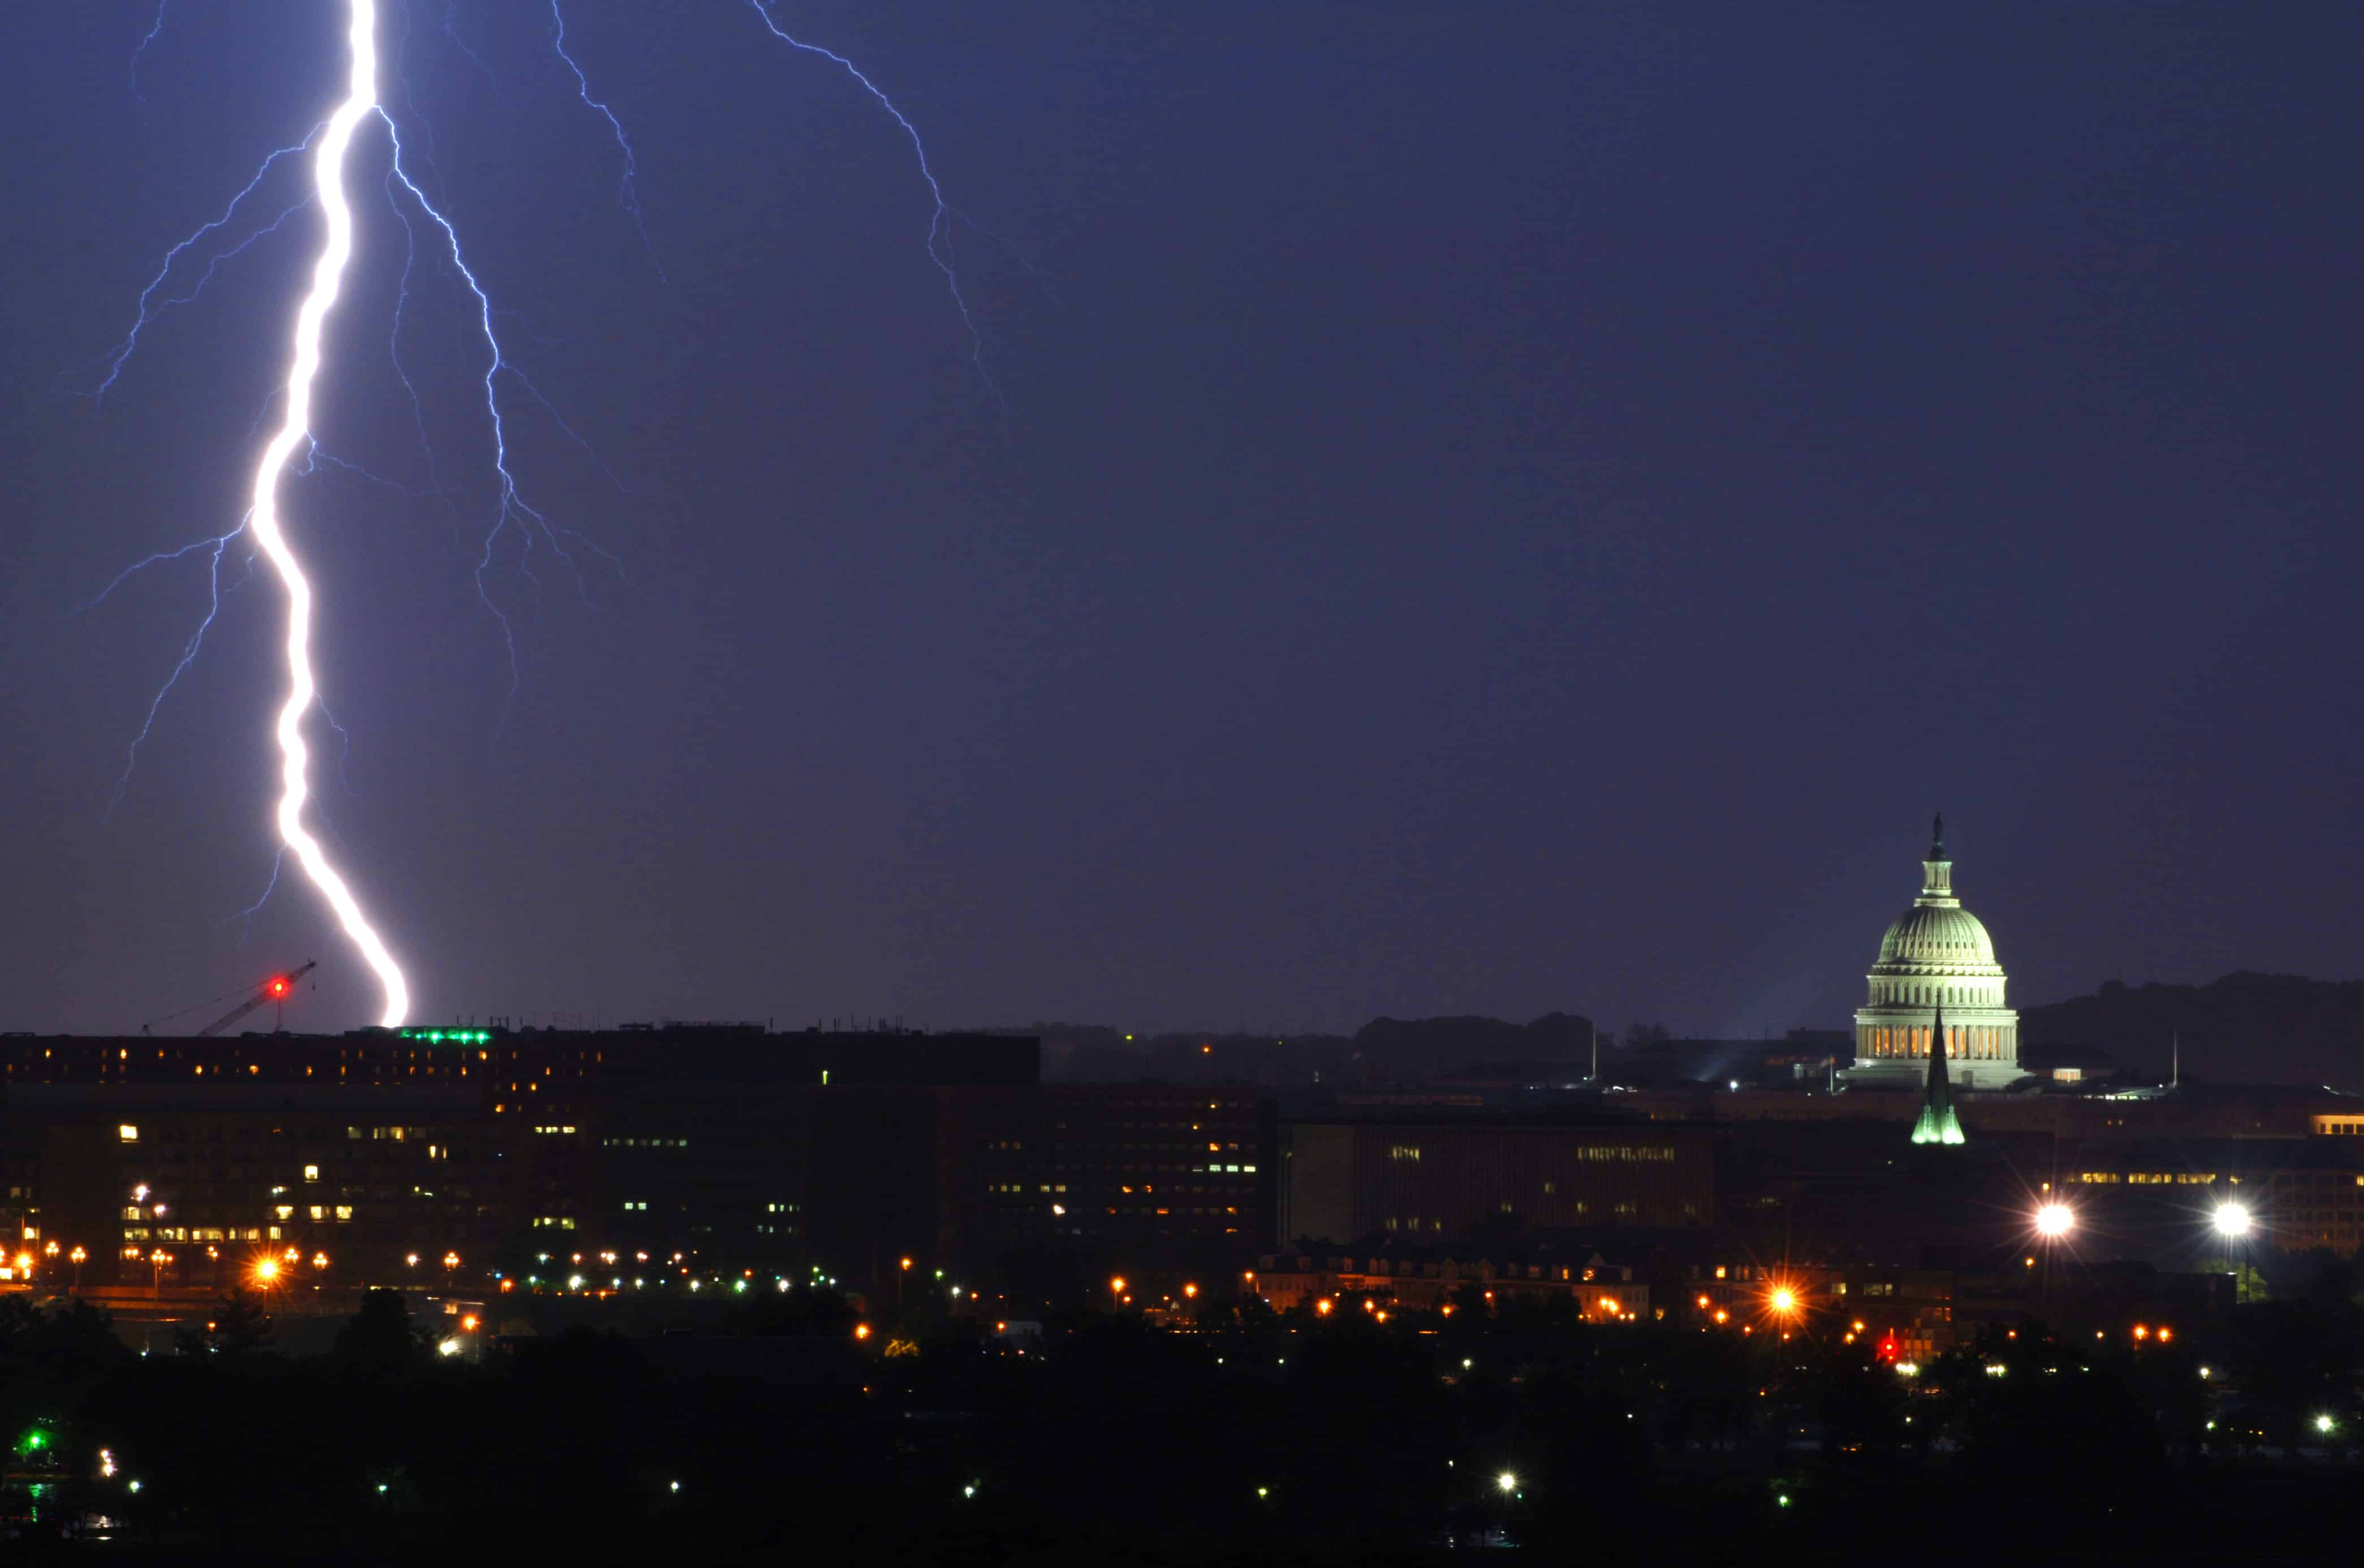 The National Weather Service has issued a Severe Thunderstorm Watch for the City of Alexandria, Virginia and the surrounding area until 11:00 p.m. this evening (Tuesday, May 15).